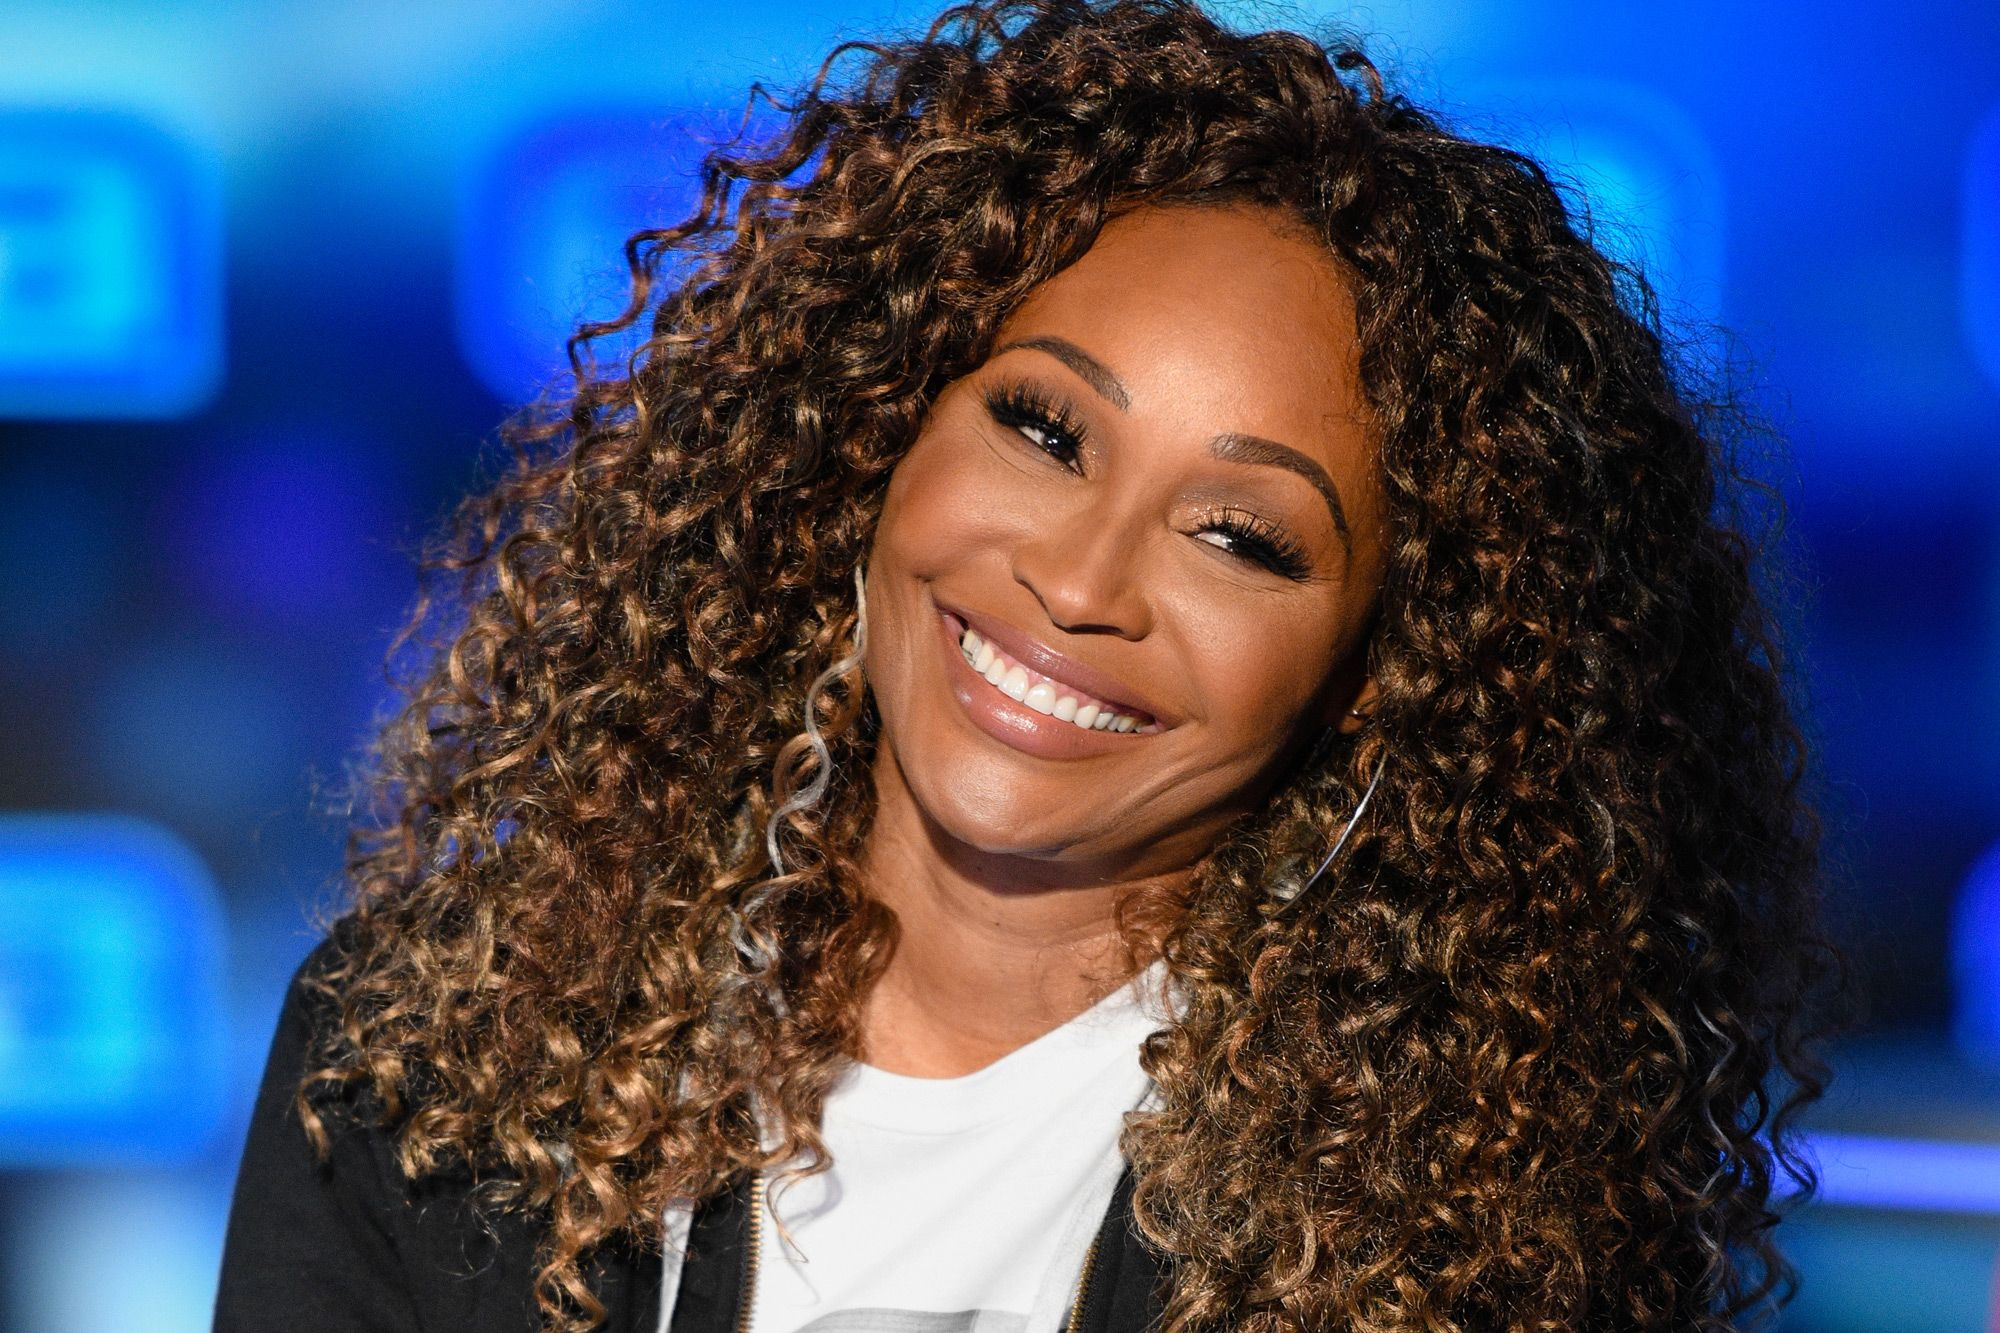 Cynthia Bailey Is Happy For A New Beginning